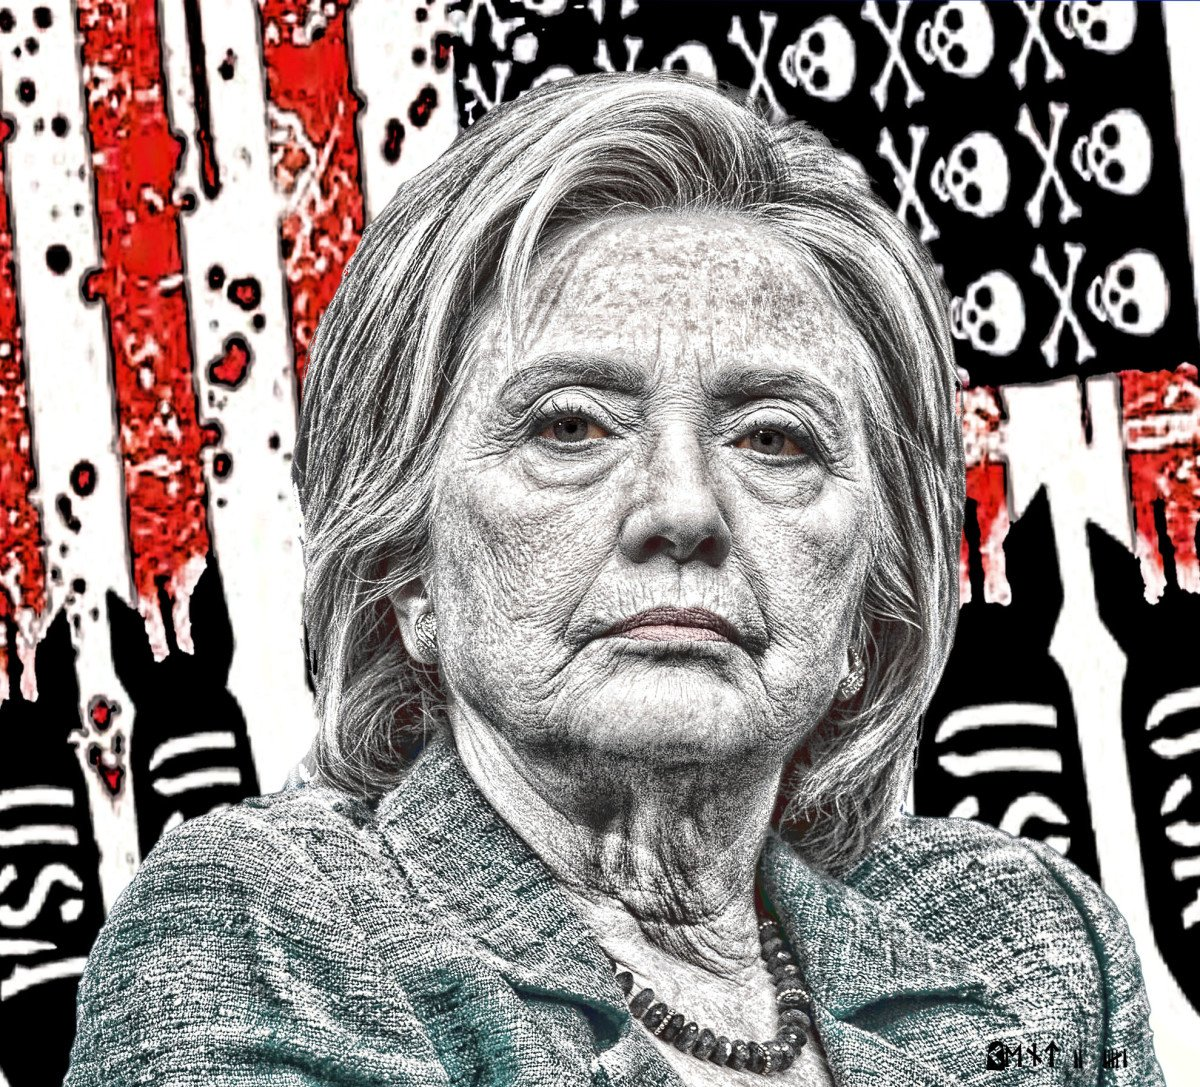 SWAMP DWELLER HILLARY Slithered out of the slime to tweet &quot;Republicans are the Death Party&quot;   Partly True, we killed her Dream to be #POTUS <br>http://pic.twitter.com/qMj9Bz814t